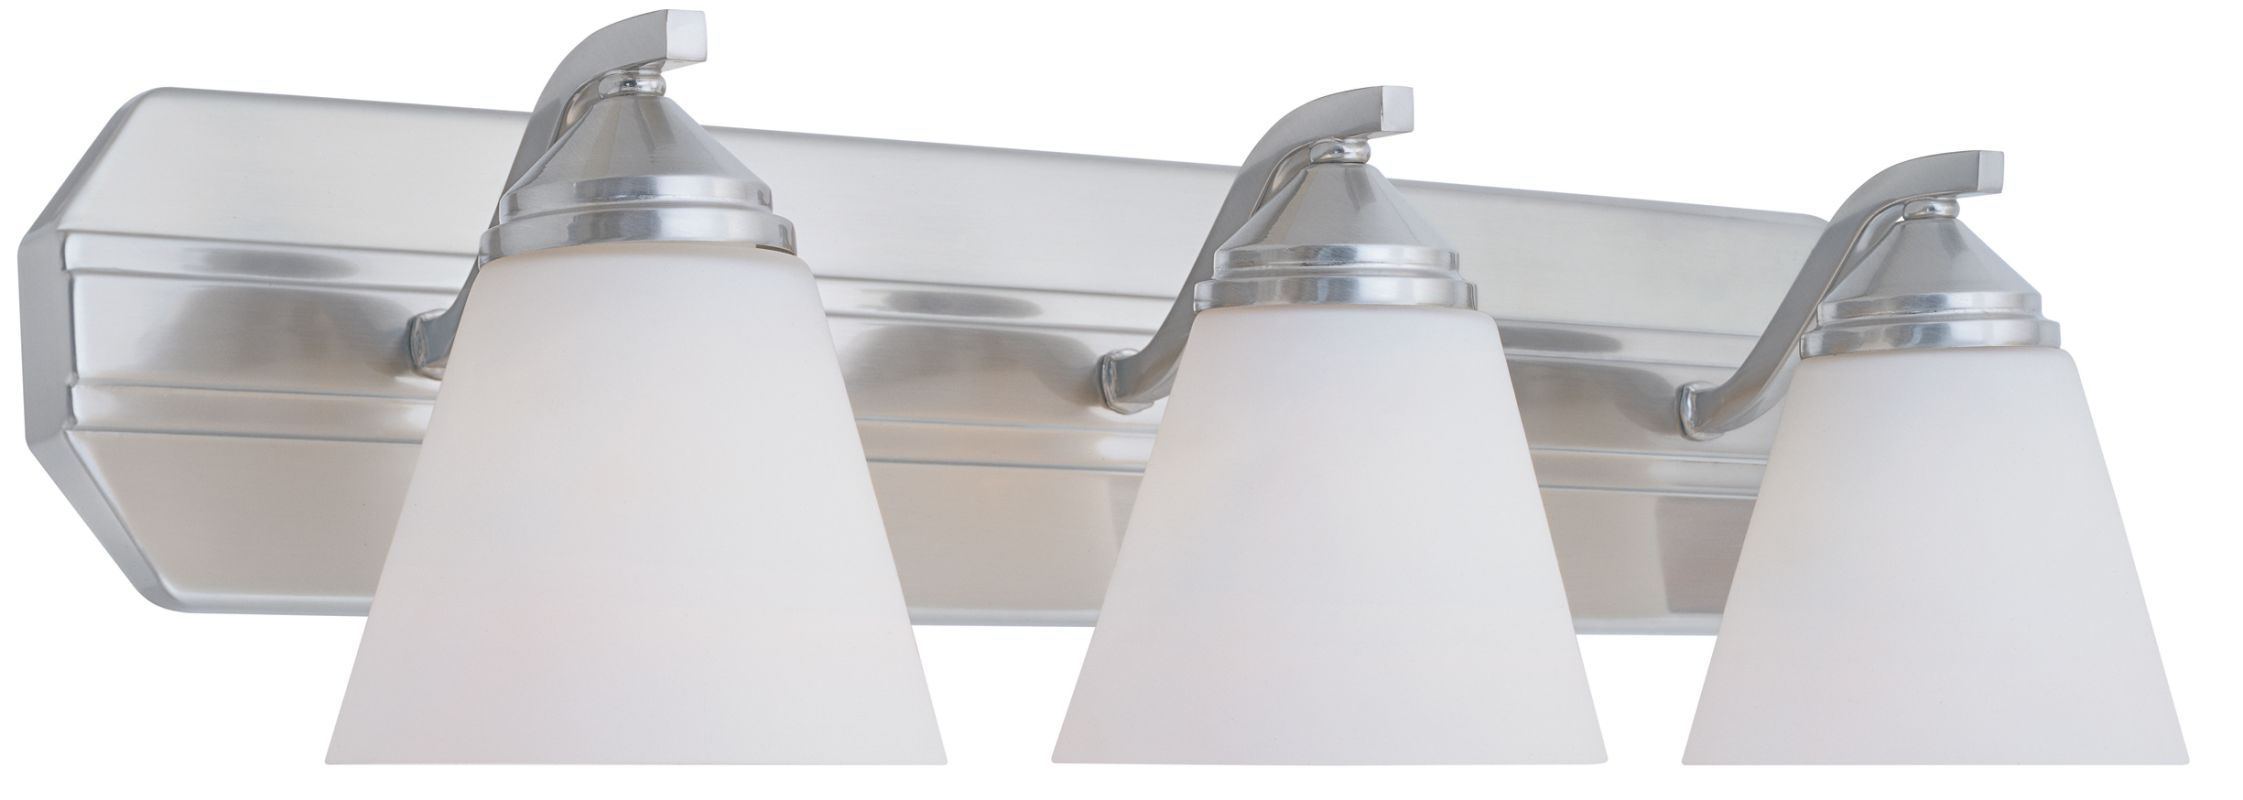 Designers Fountain 6603 300 Watt Three Light Bathroom Fixture from the